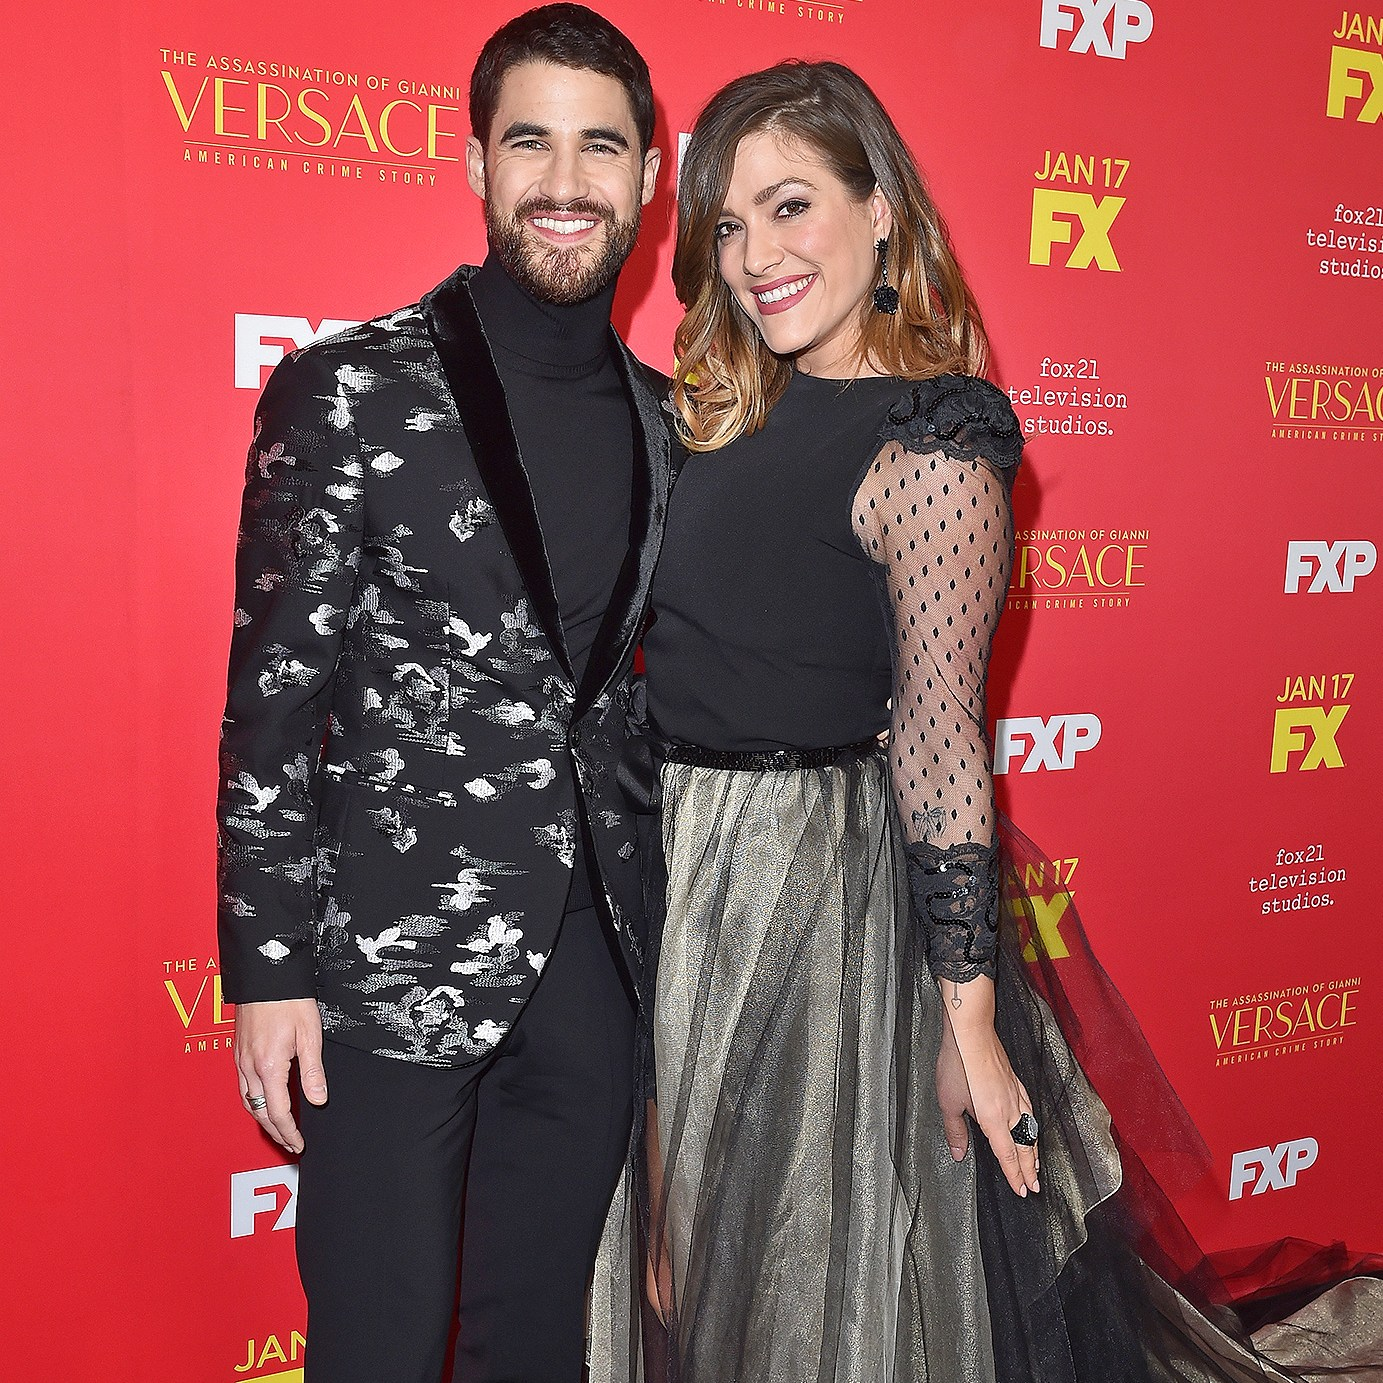 Darren Criss, Mia Swier, Engaged, Assassination of Gianni Versace